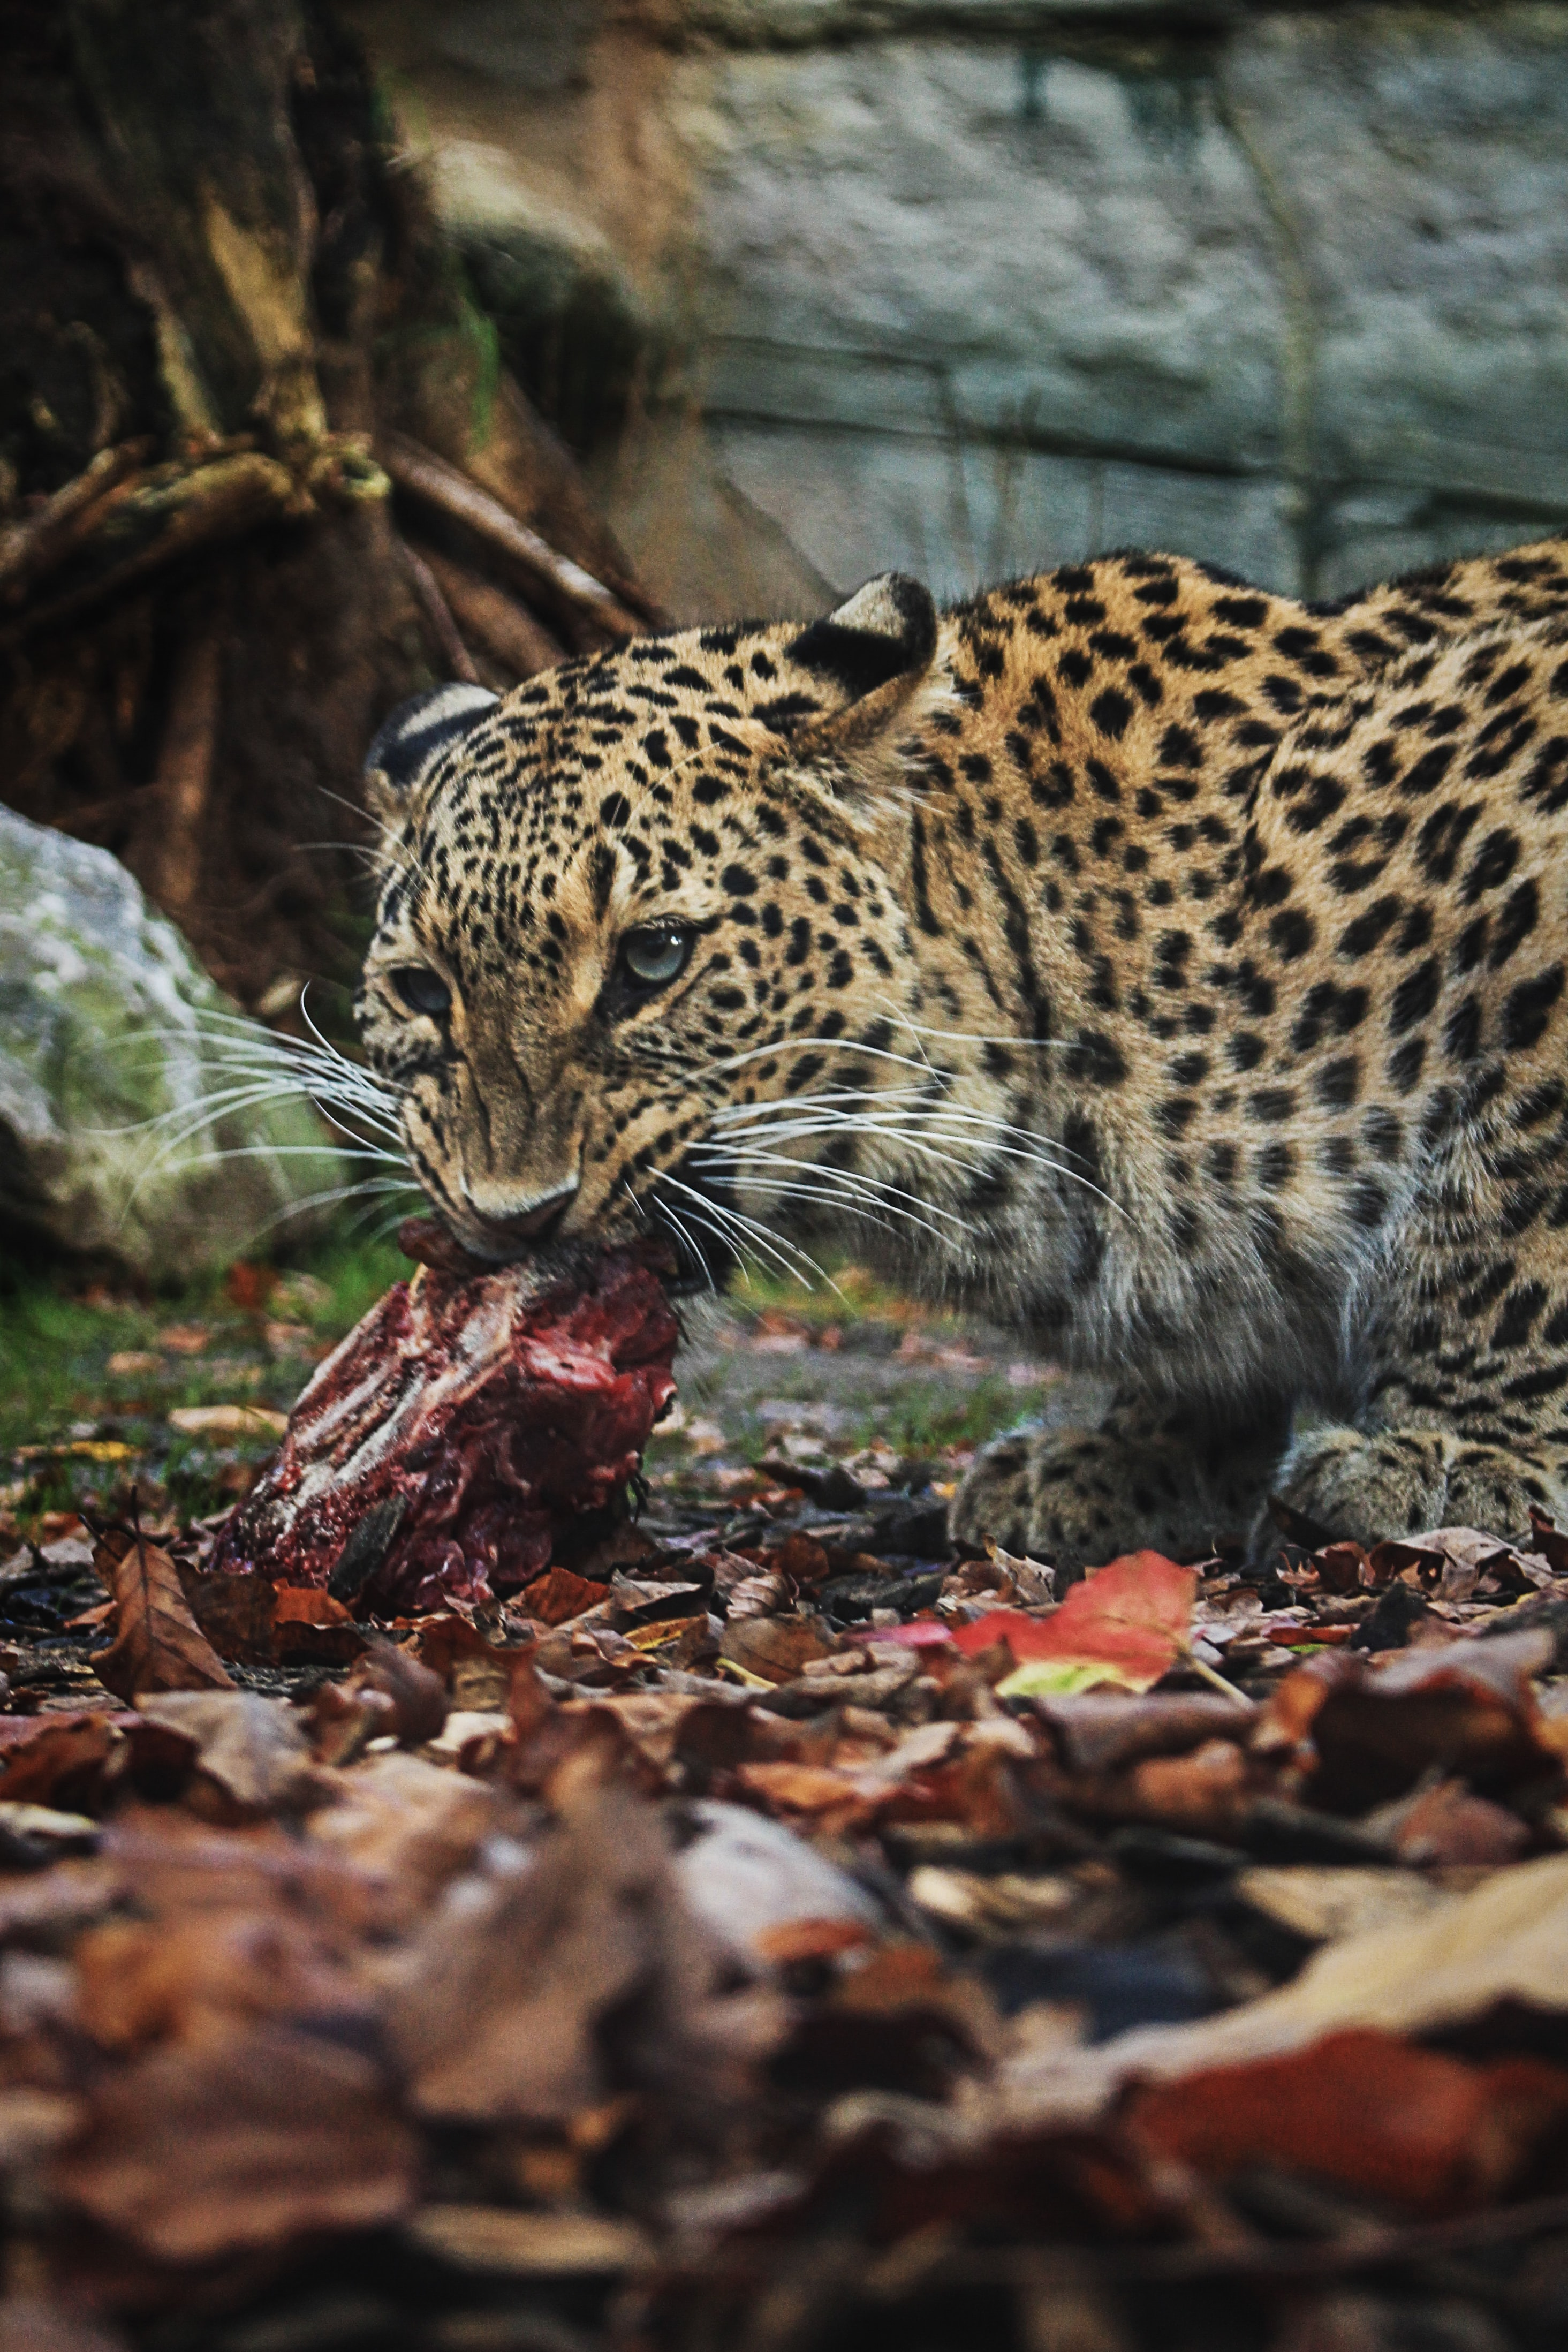 leopard eating raw meat